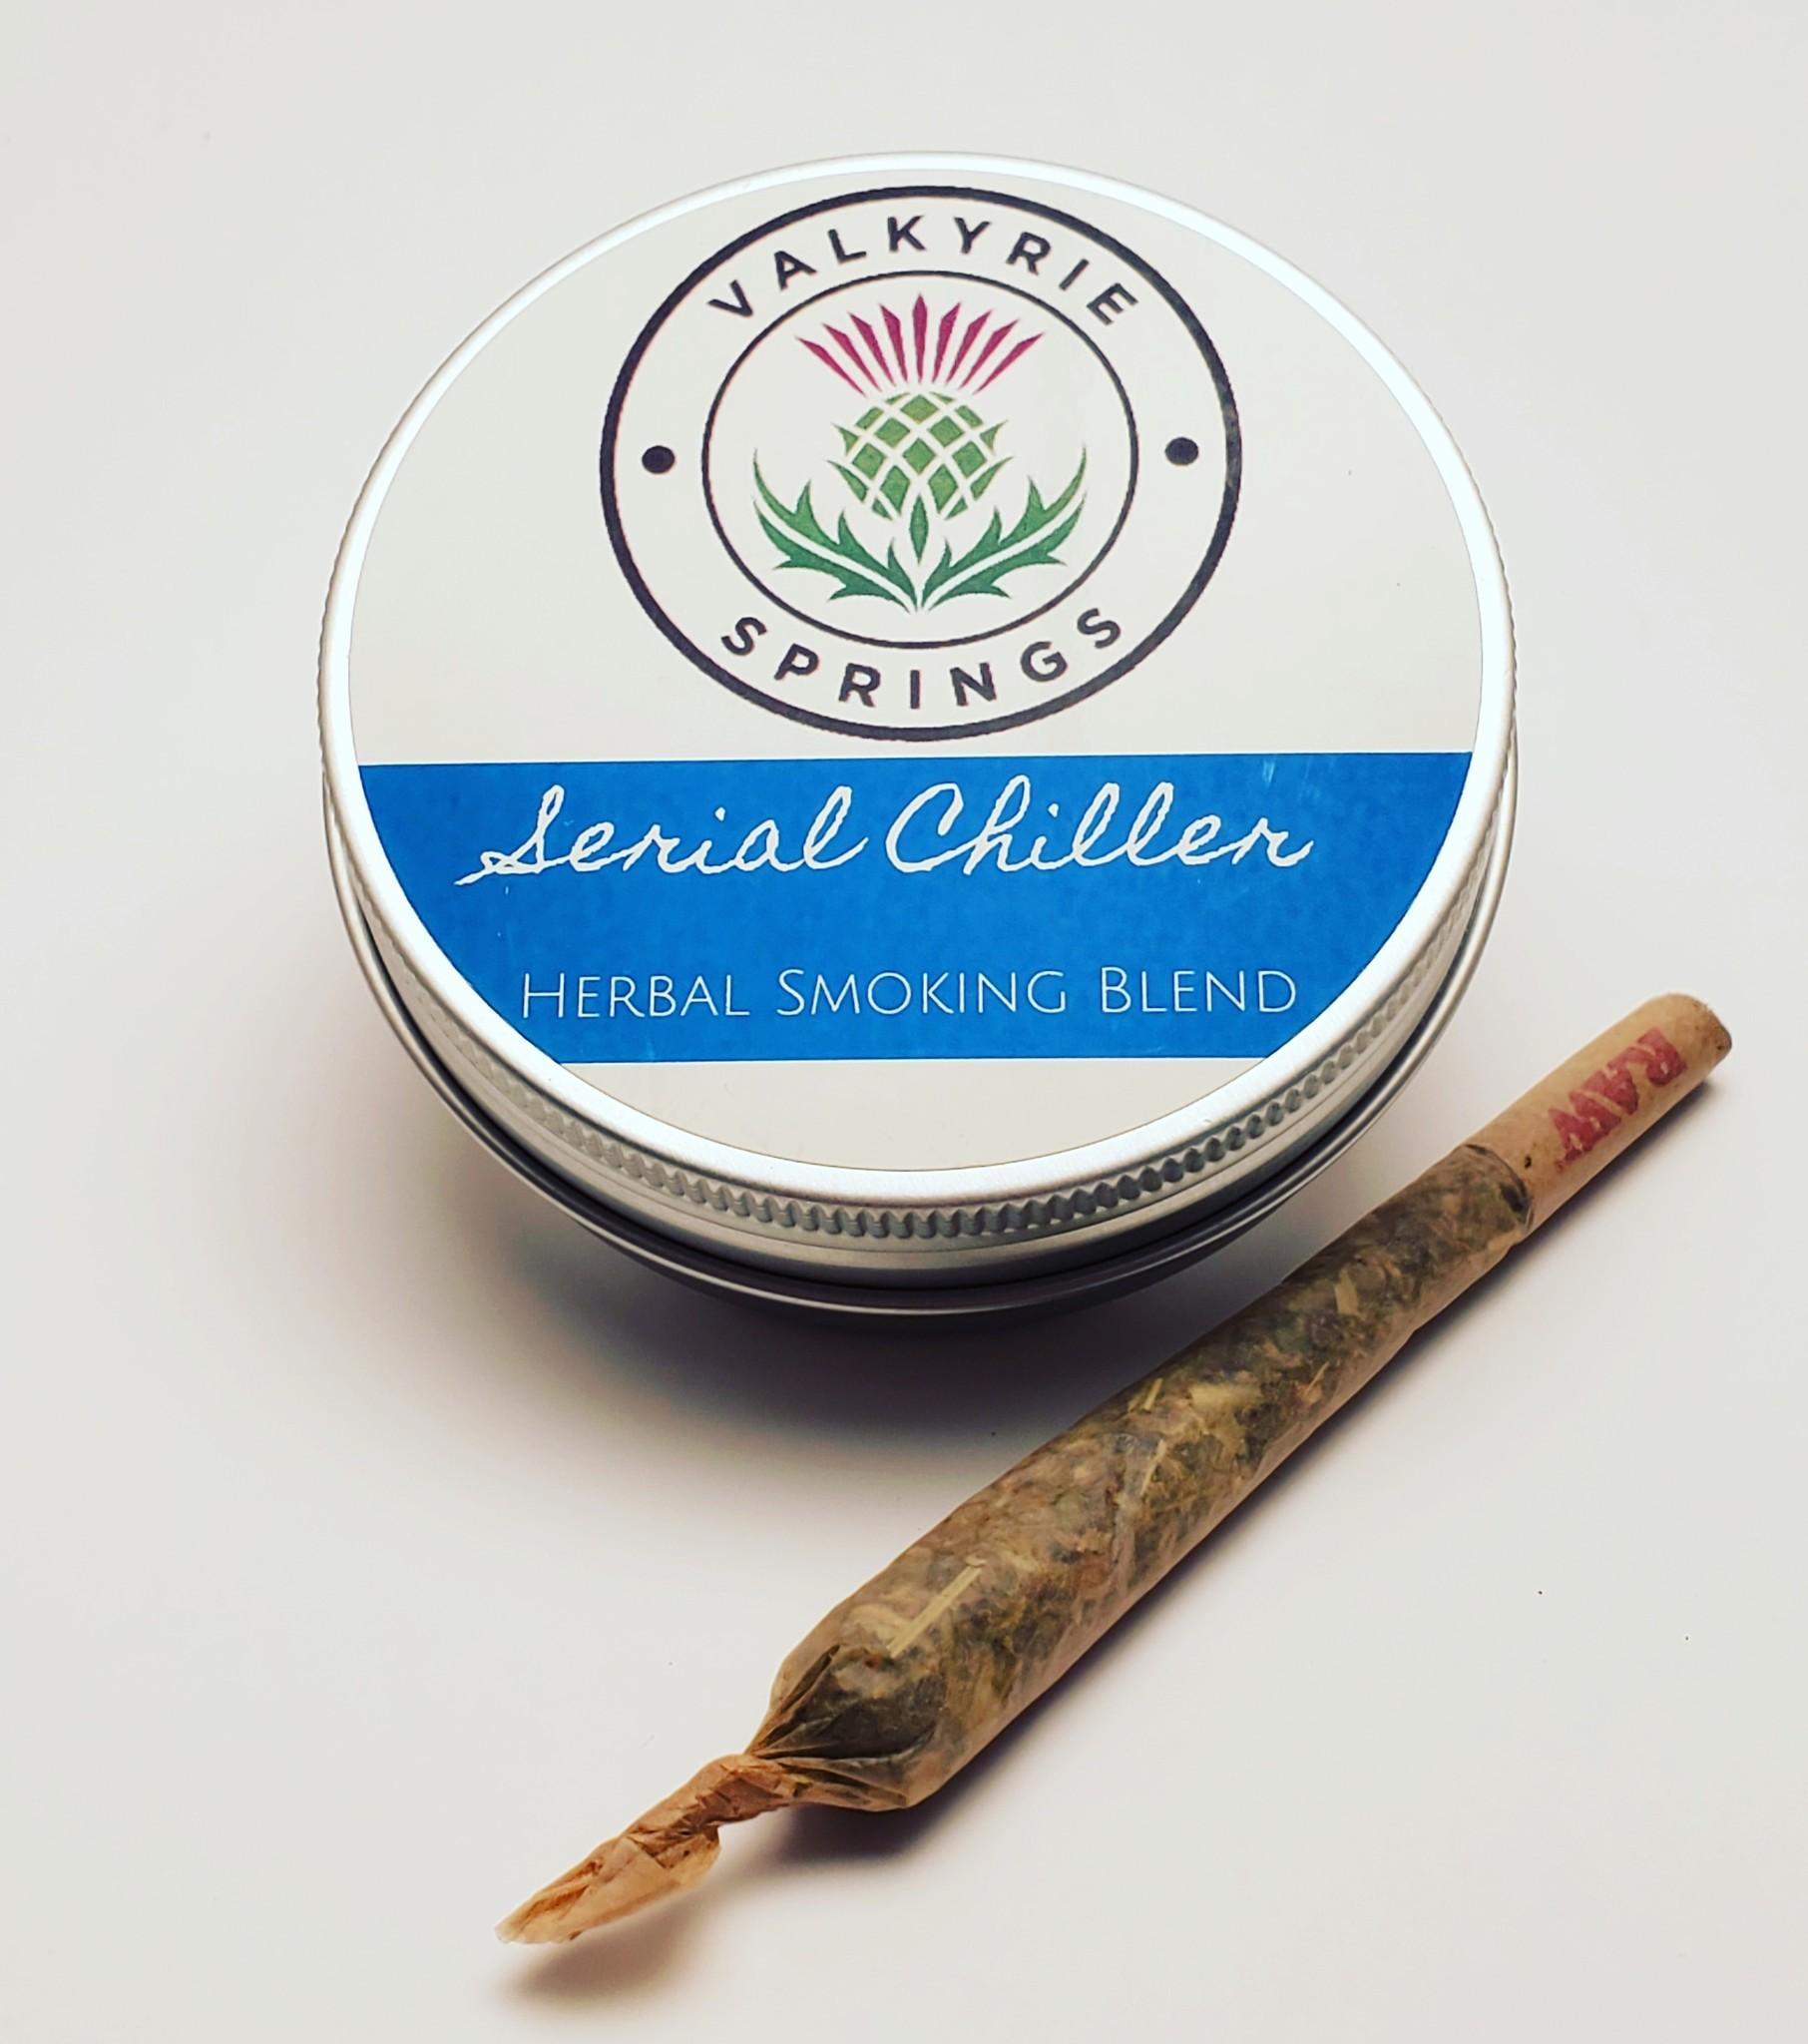 Valkyrie Springs Valkyrie Springs | SERIAL CHILLER BLEND PRE-ROLL | 0.5g